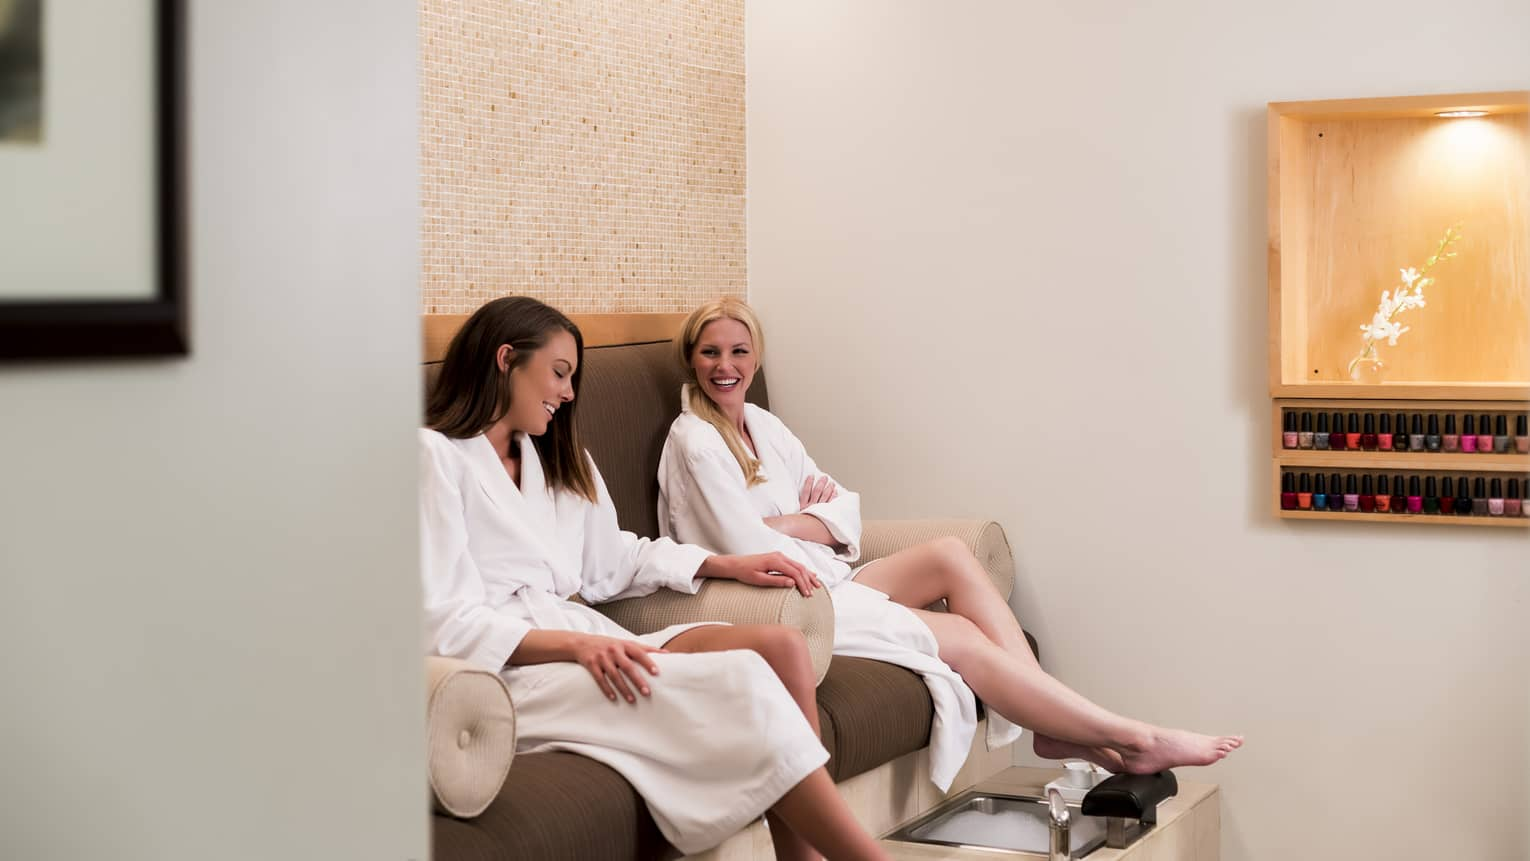 Two women in white bathrobes sit in spa chairs, laugh with feet above pedicure baths